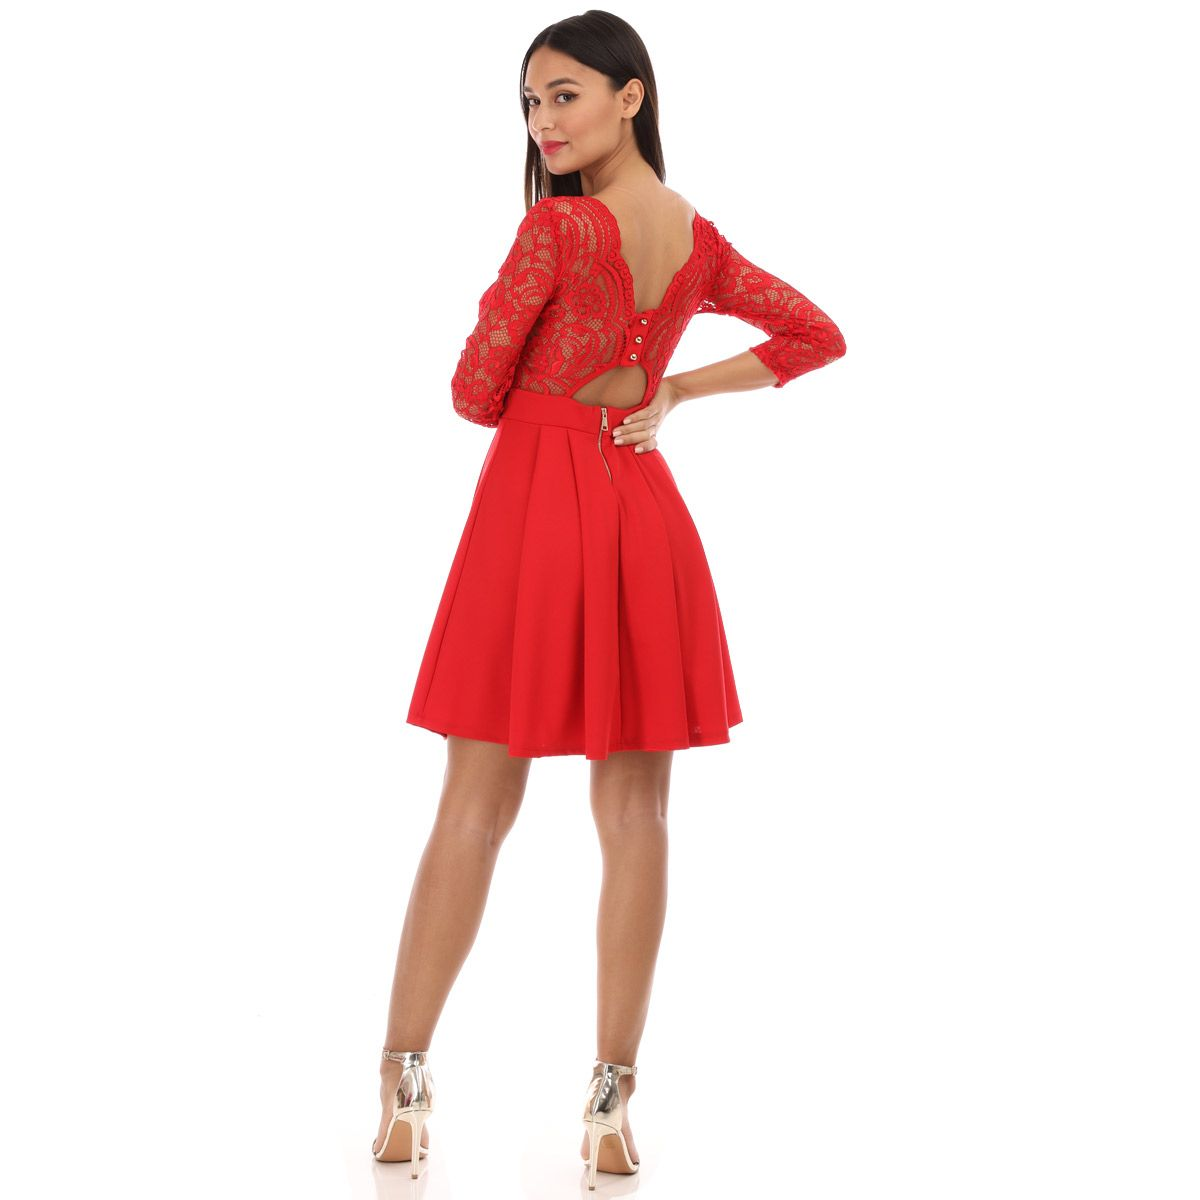 Robe patineuse à dentelle rouge